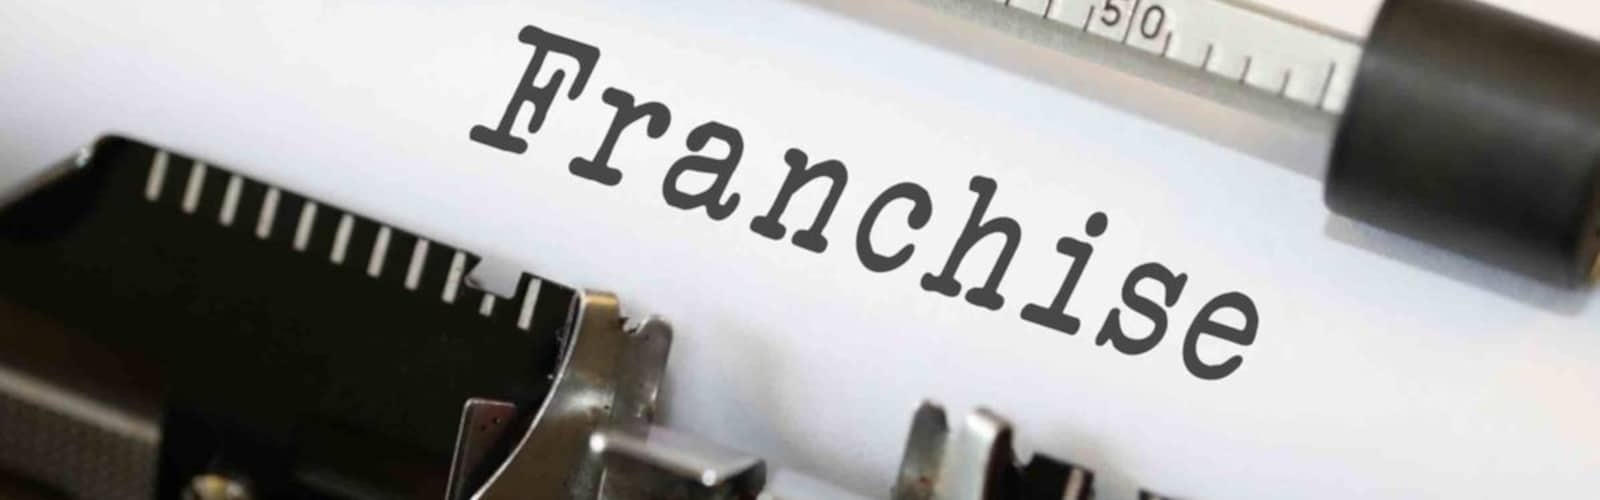 S'implanter en franchise : le guide complet